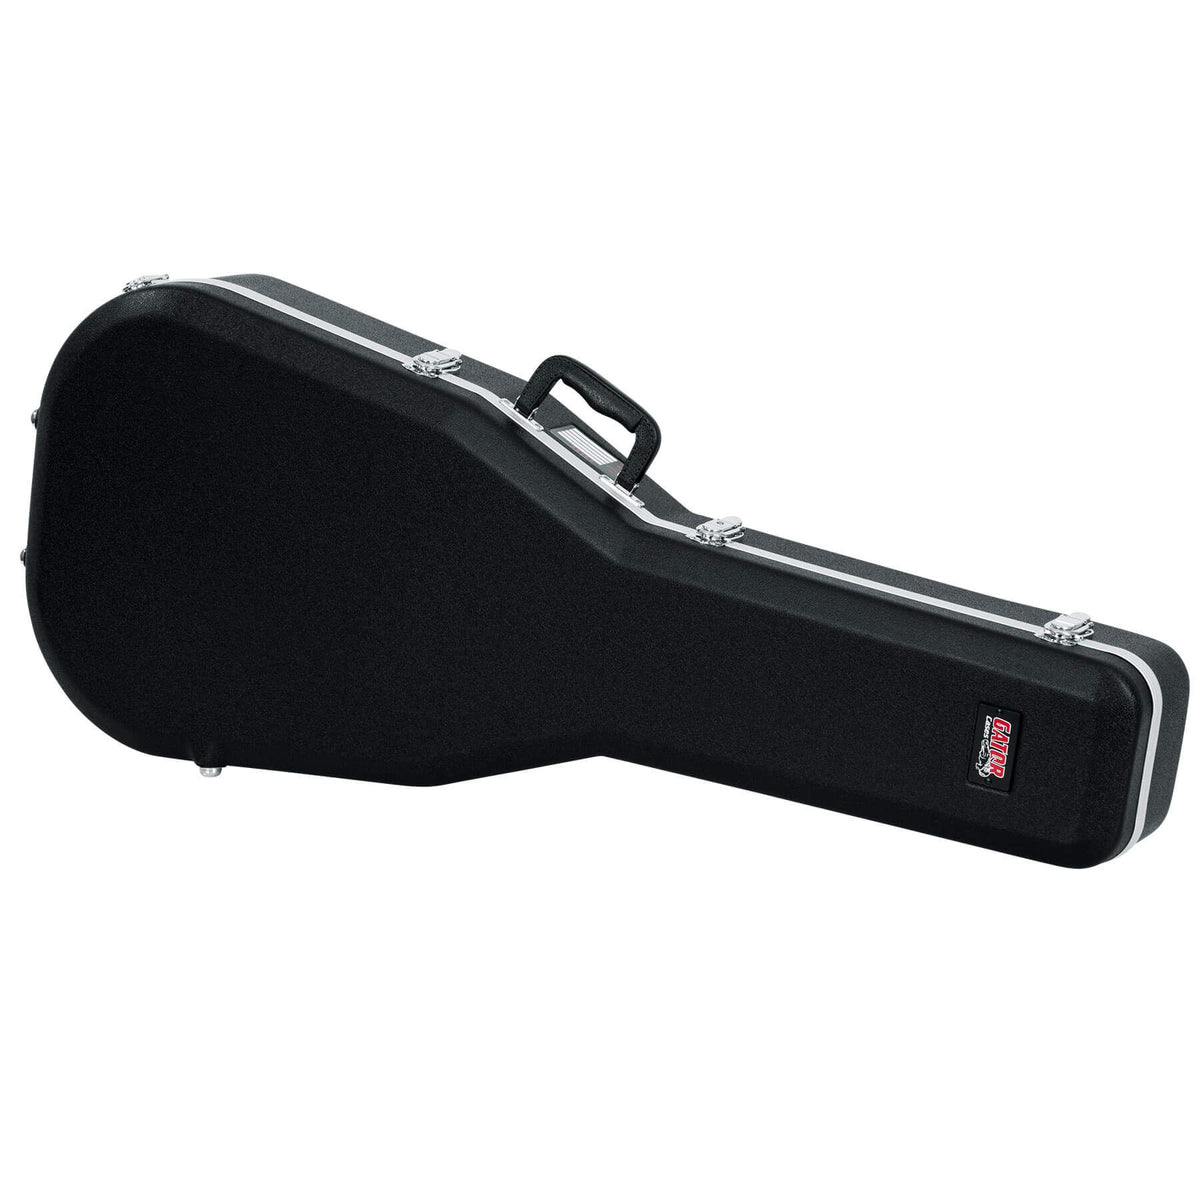 Gator Classical Guitar Case fits PRS 2014 Collection Series Nylon String